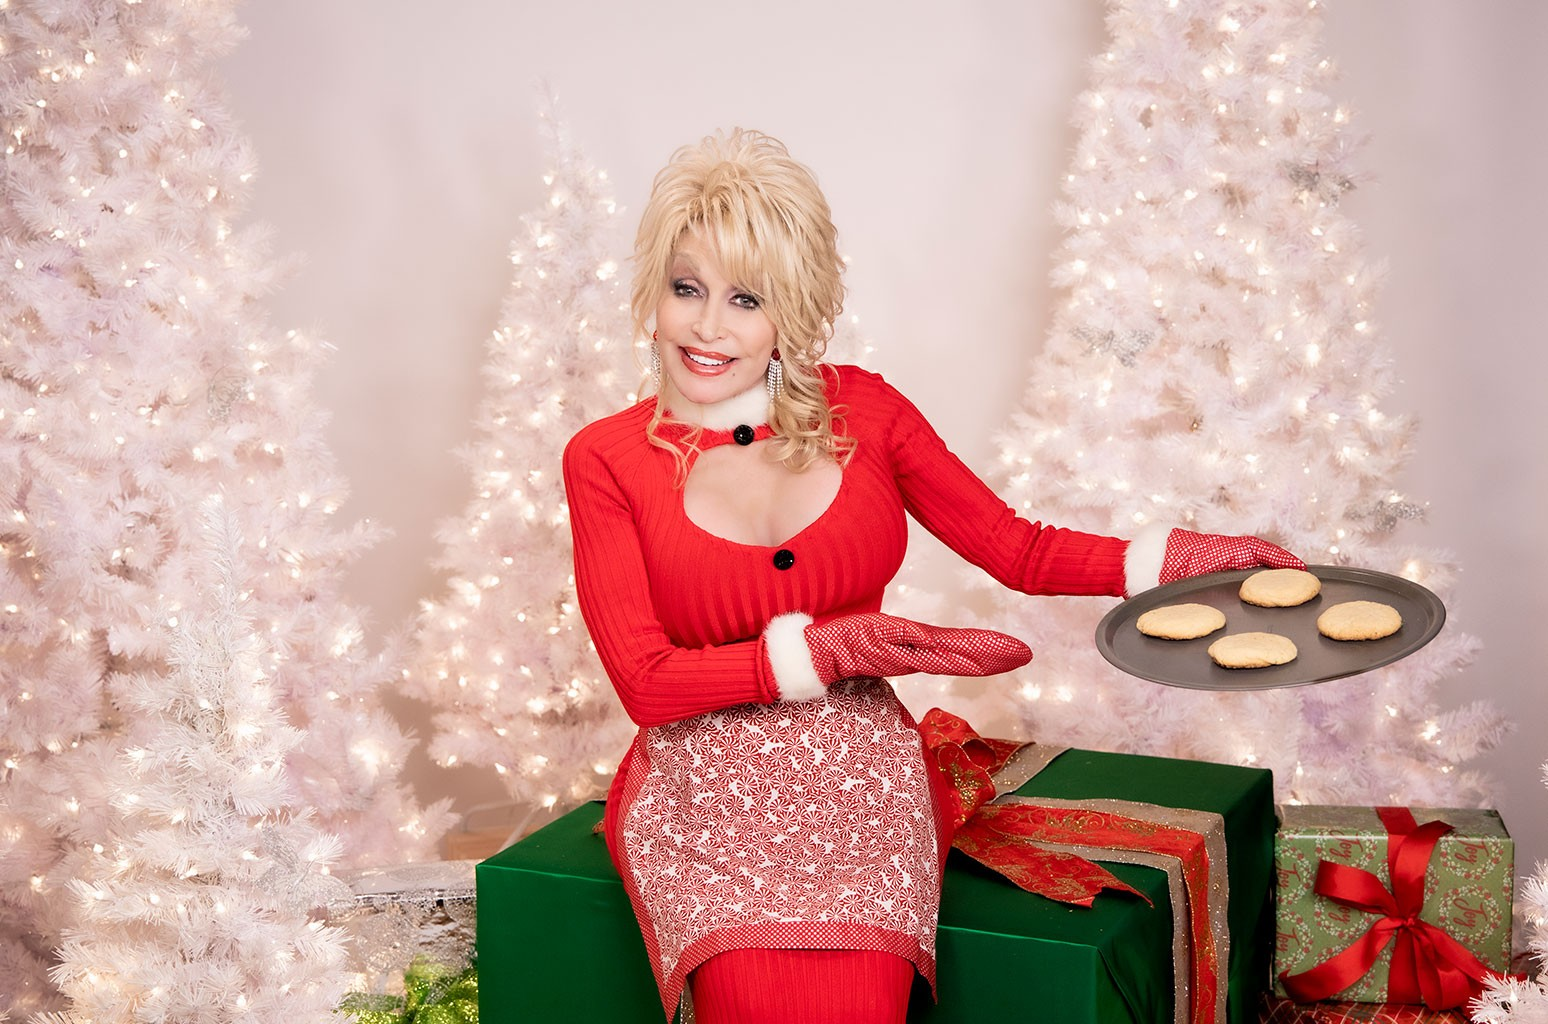 How to Watch Dolly Parton & Friends' Live Holiday Special With Pandora